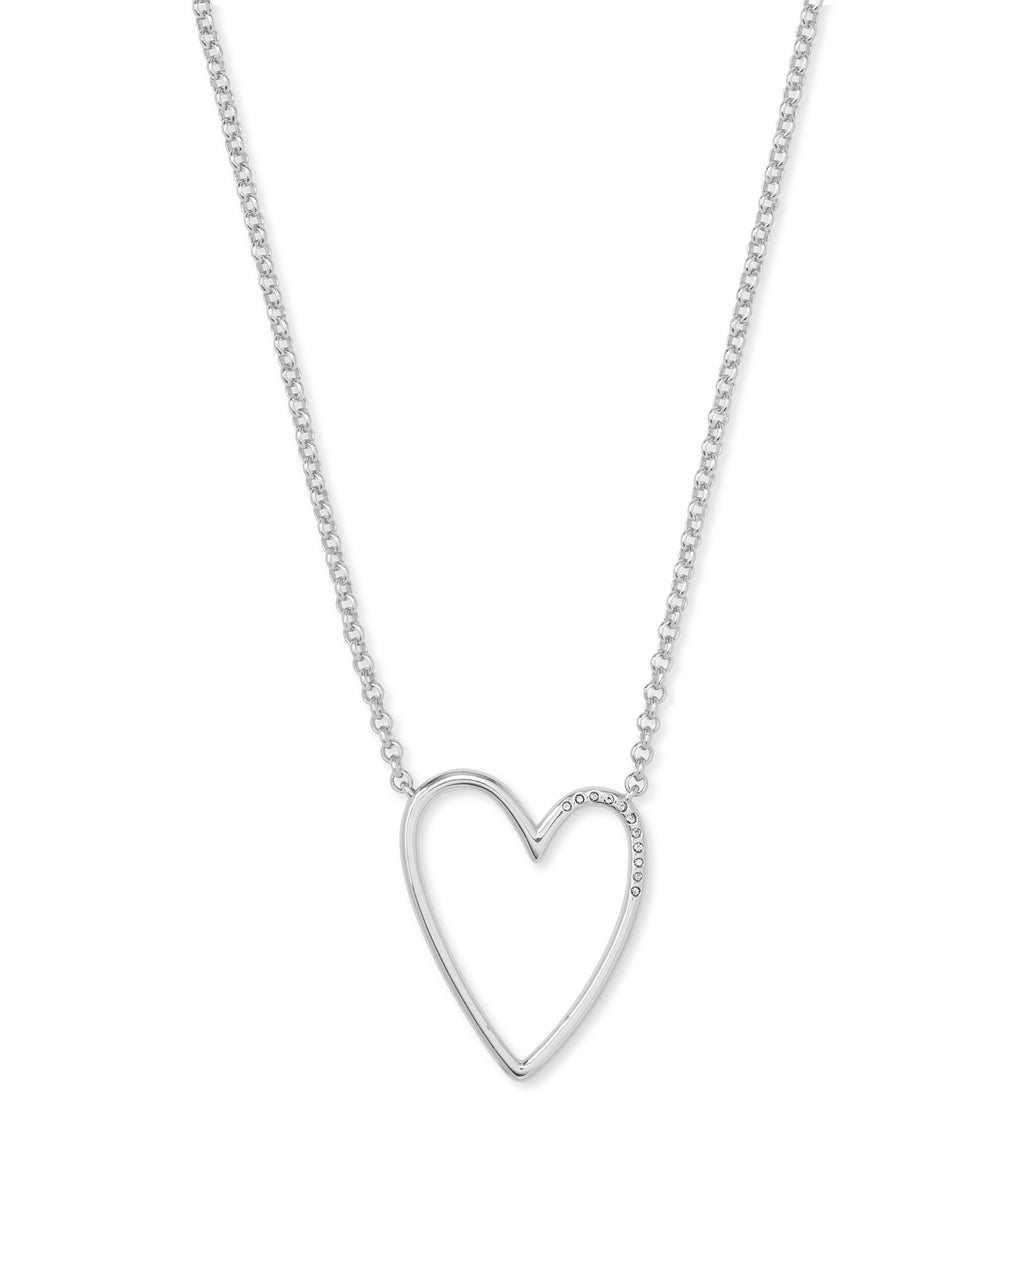 Ansley Pendant Necklace in Rhodium